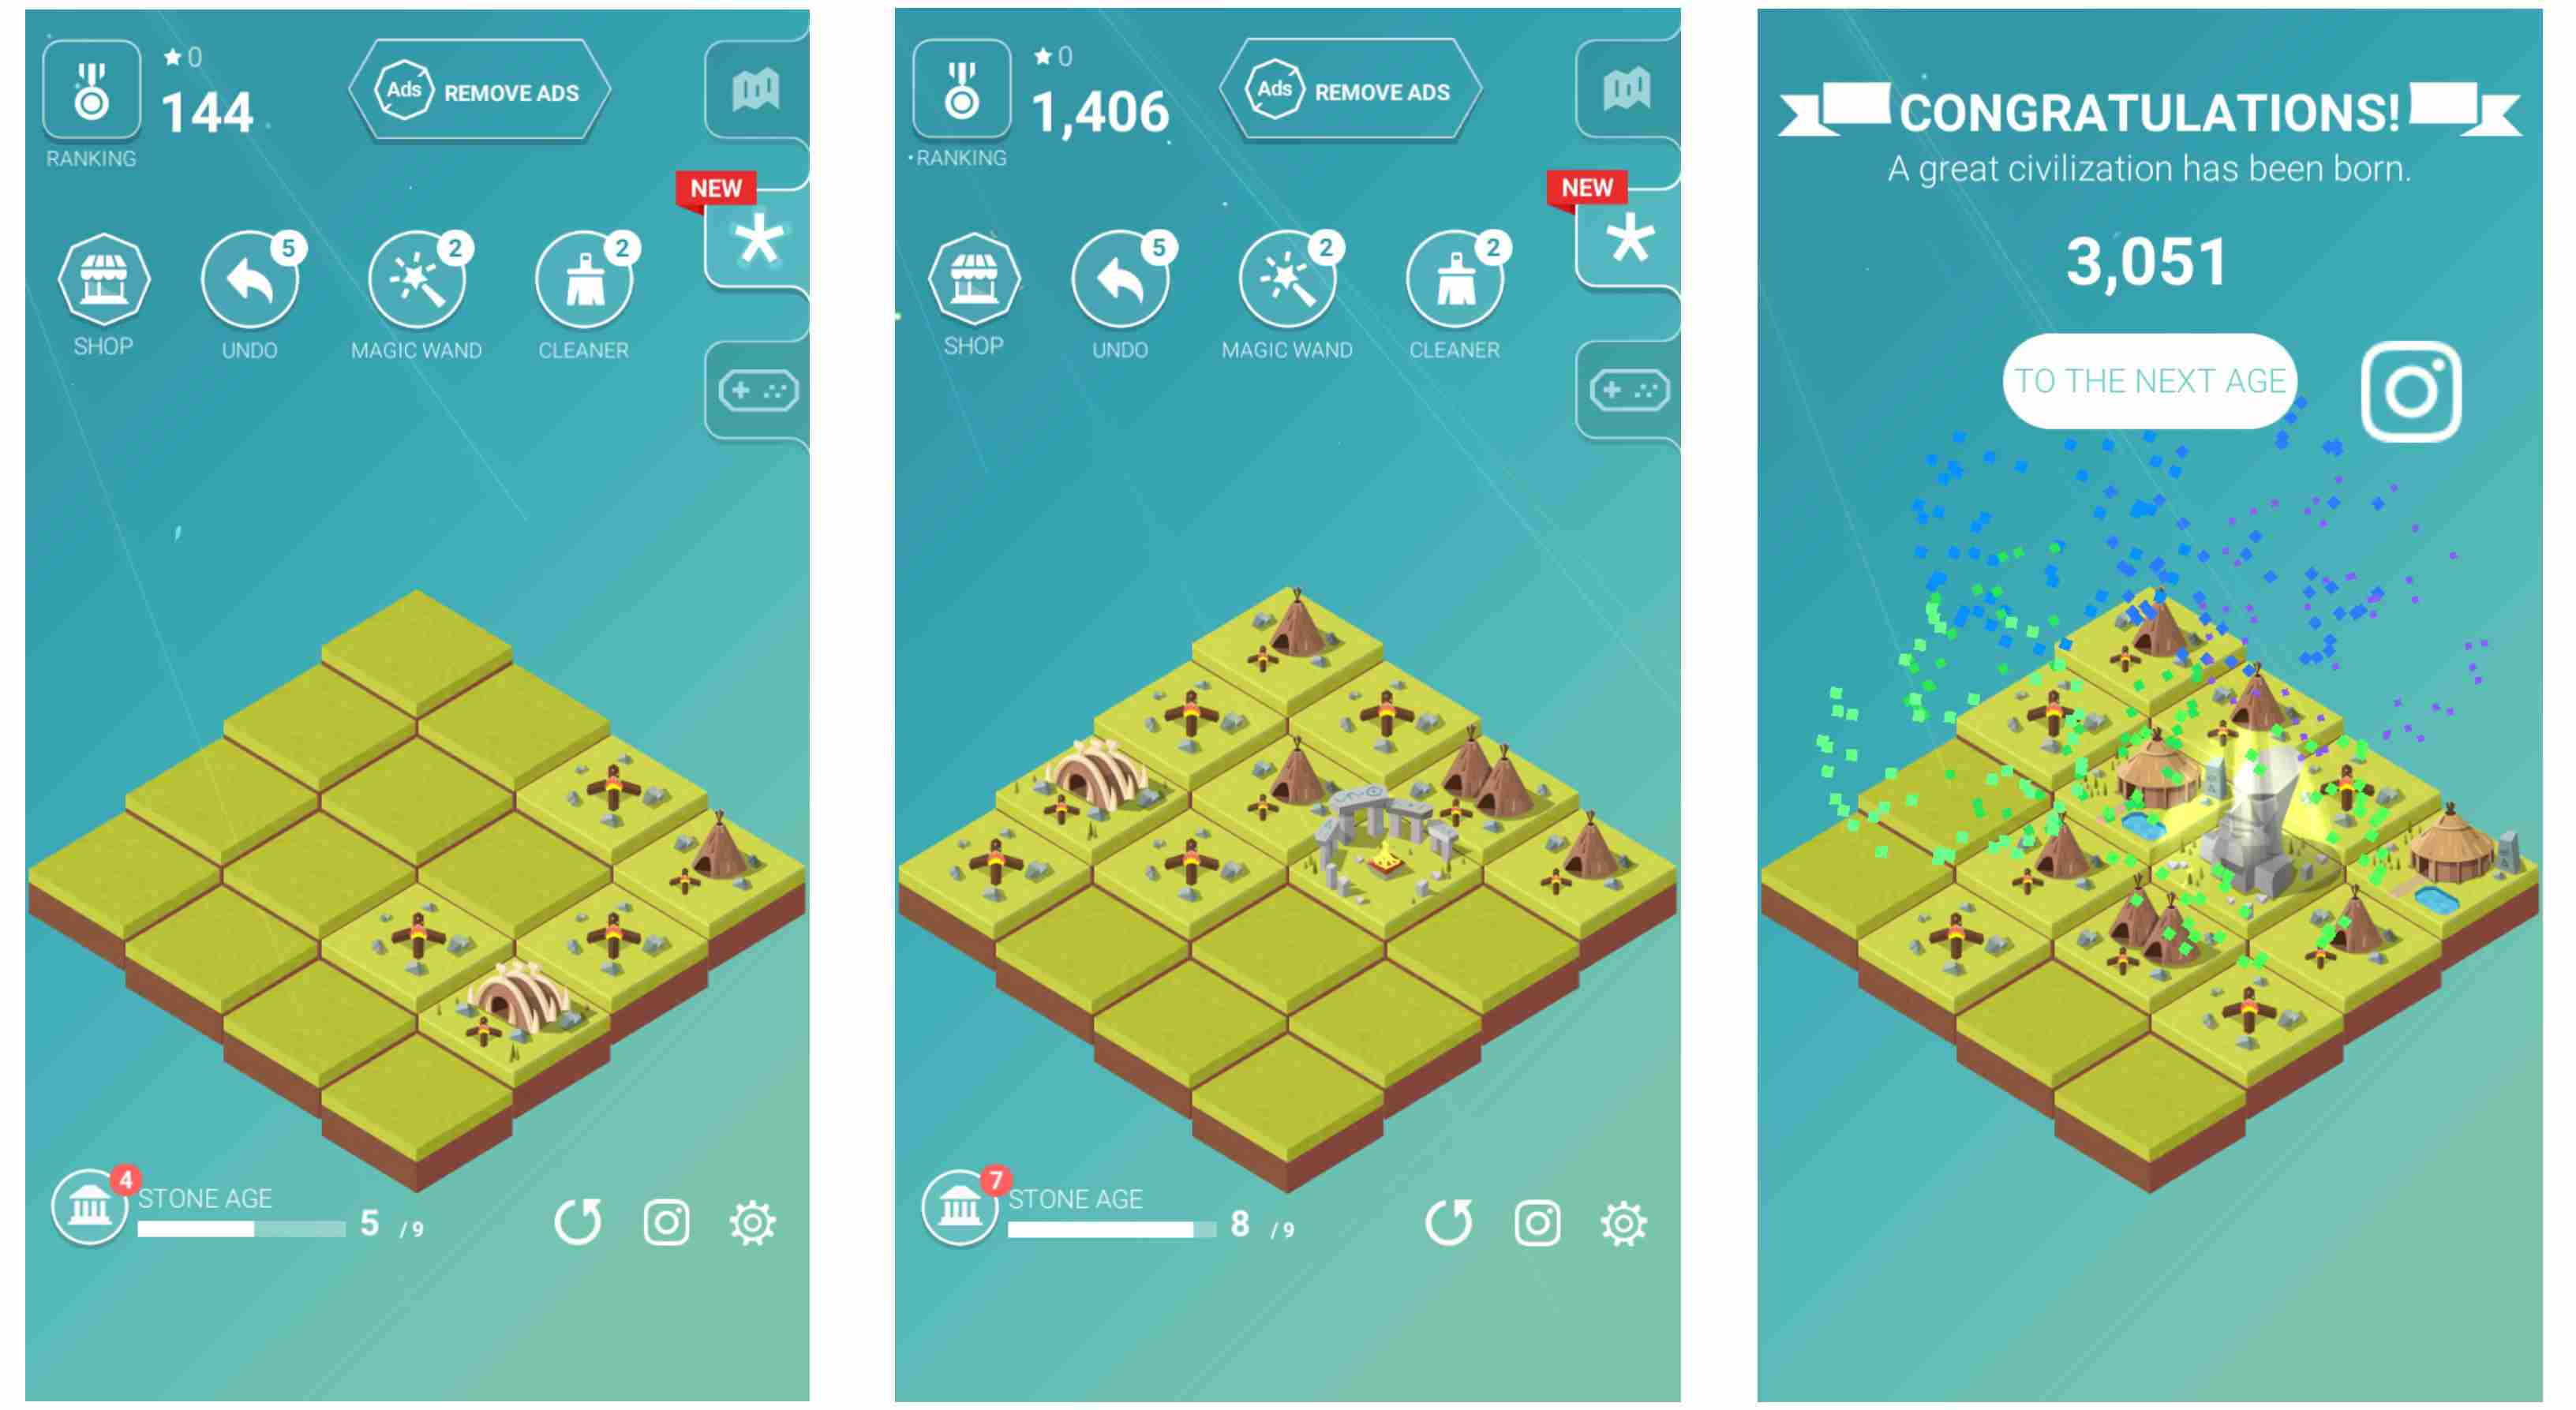 A player builds up their civilization in Age of 2048